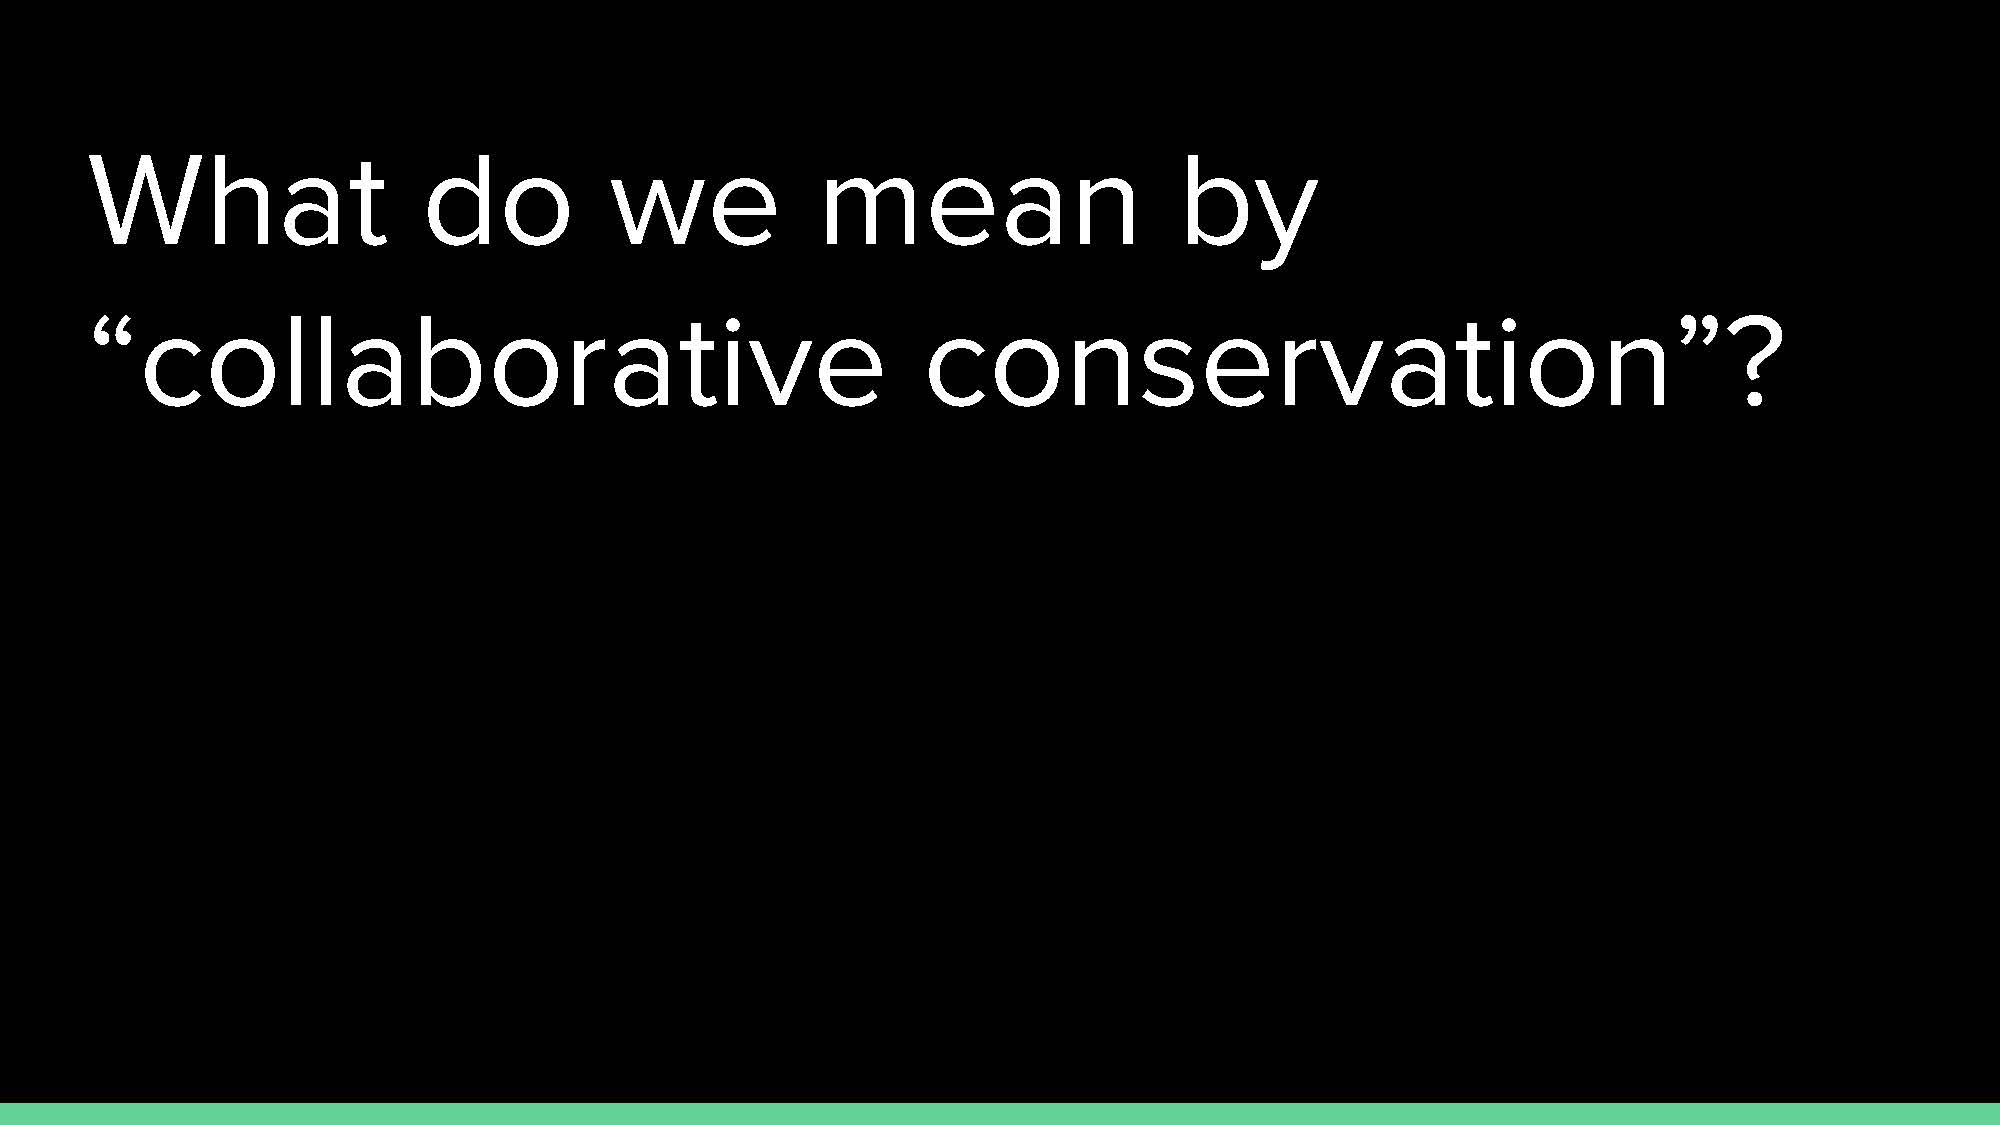 Untold Stories 2019_ Indigenous Futures and Collaborative Conservation_Page_06.jpg